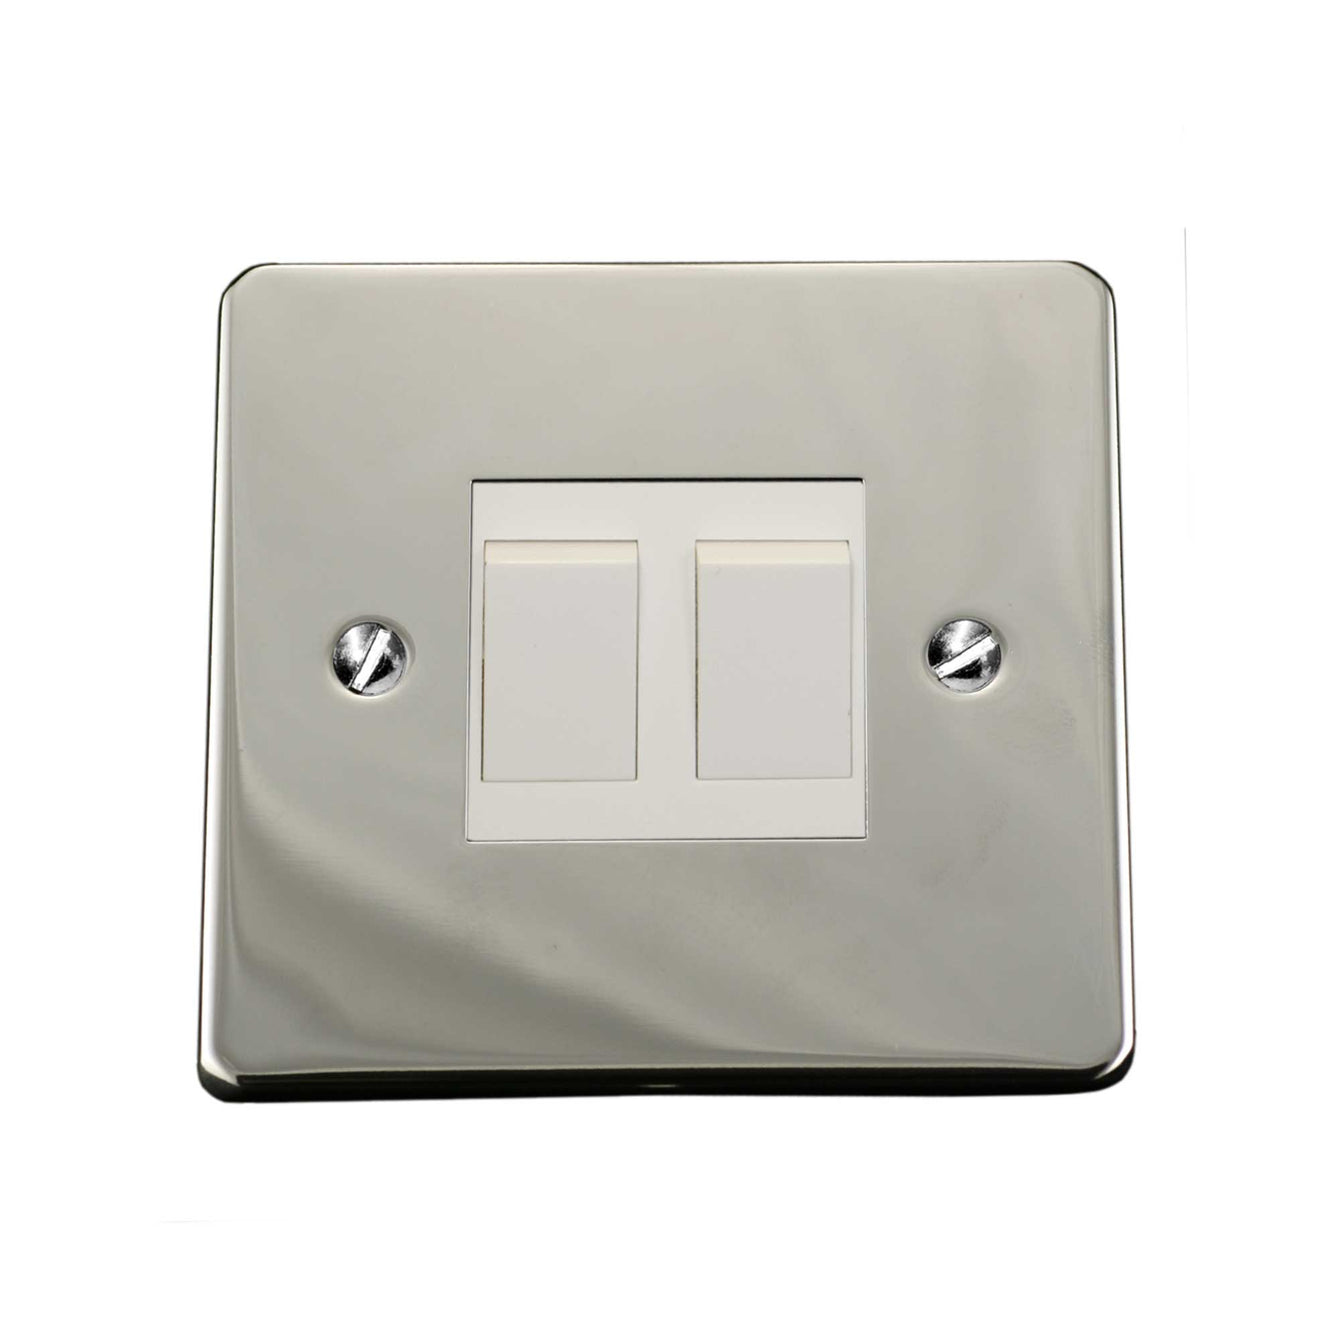 ElekTek Light Switch Conversion Cover Plate Double Victorian Dawn Blue